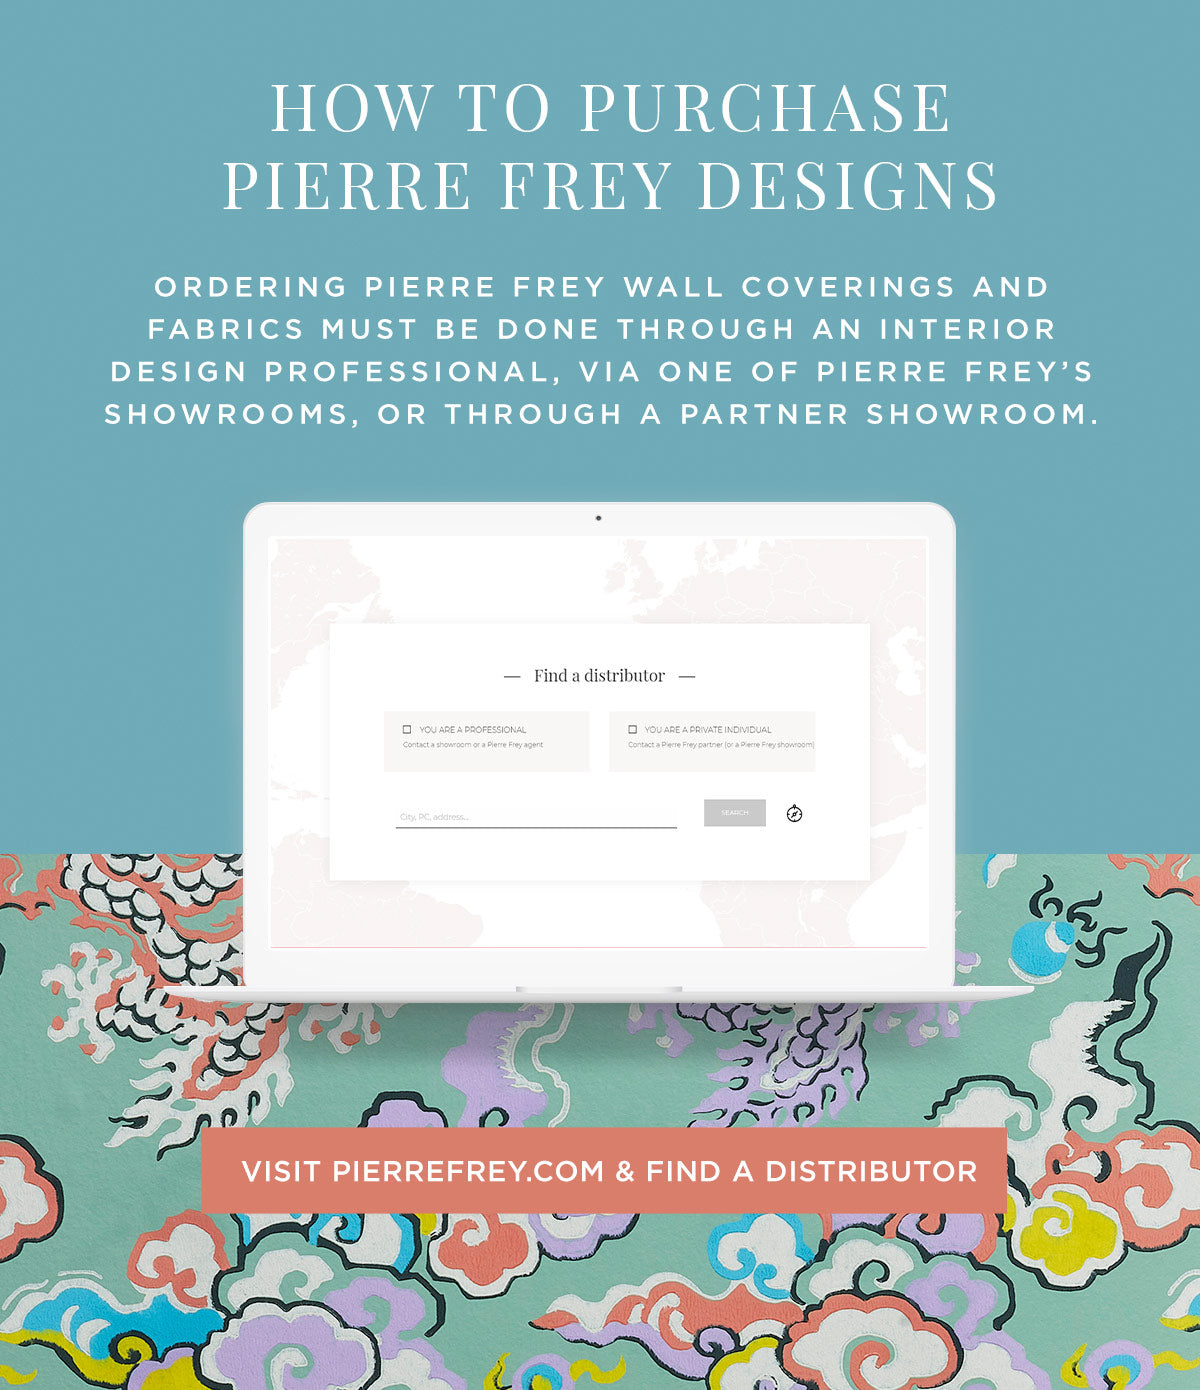 Visit PierreFrey.com to Find a Distributor